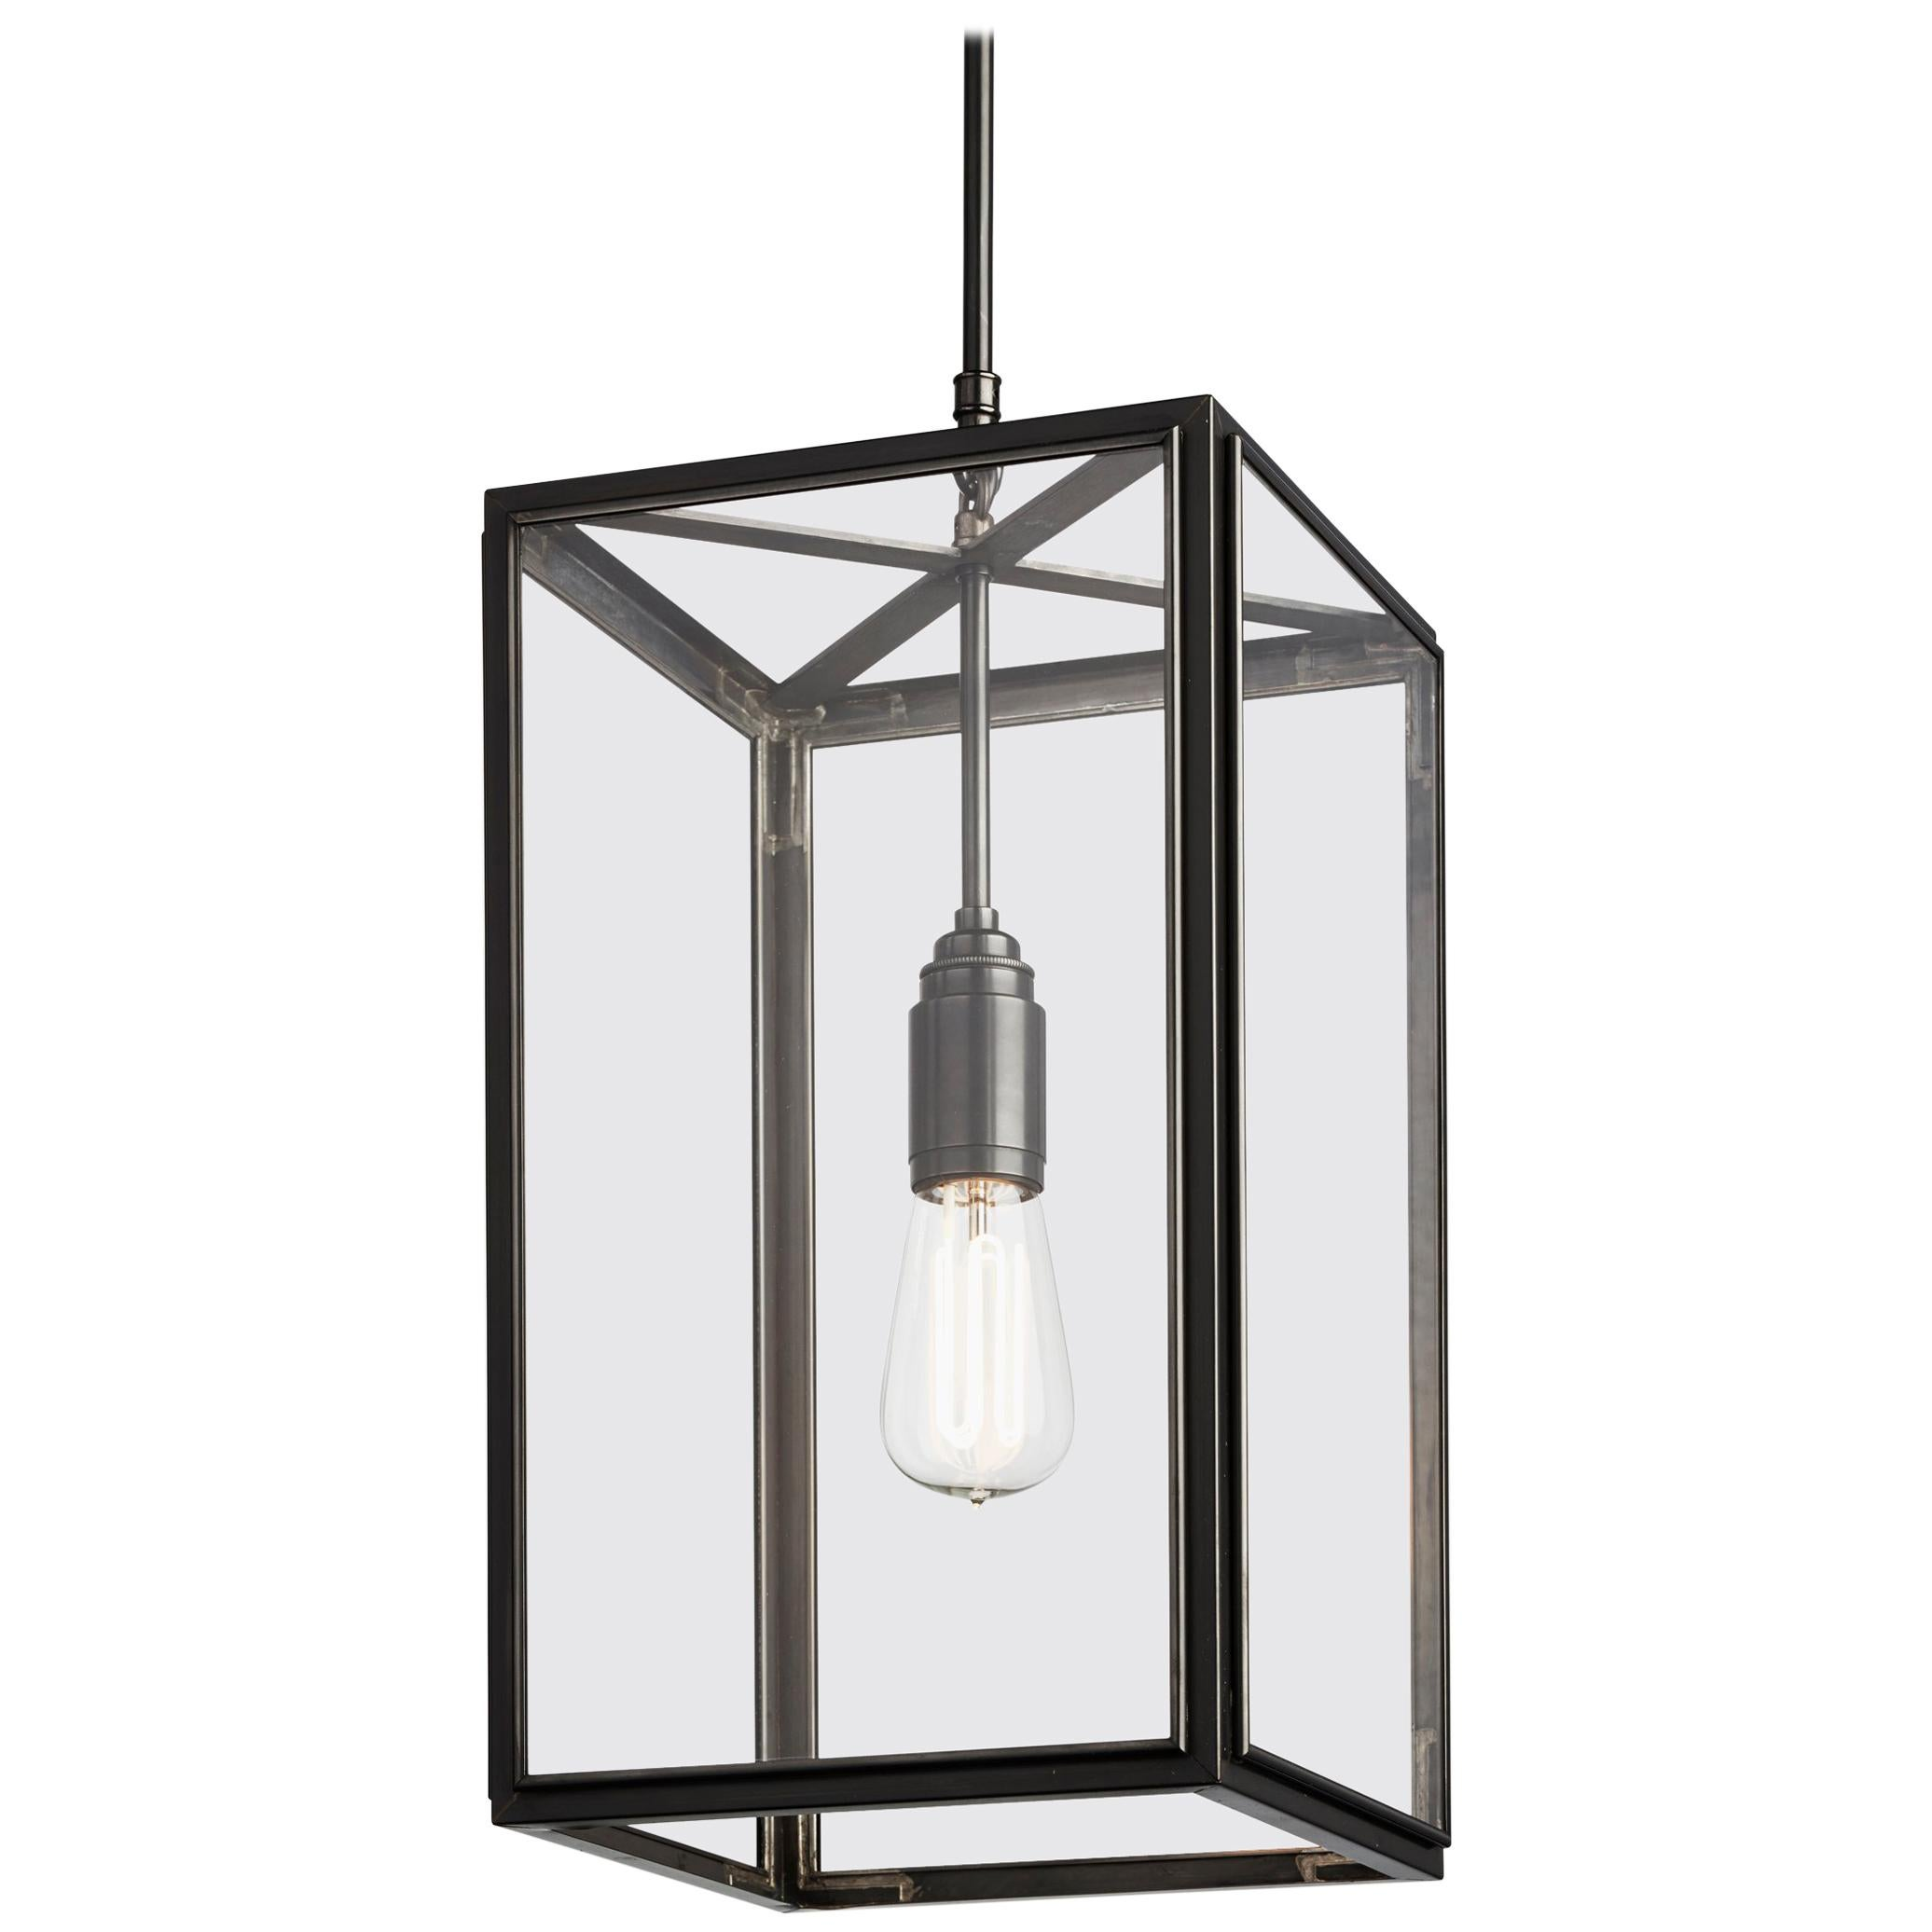 Tekna Ilford-C Pendant Light in Brass with Dark Bronze Finish and Clear Glass